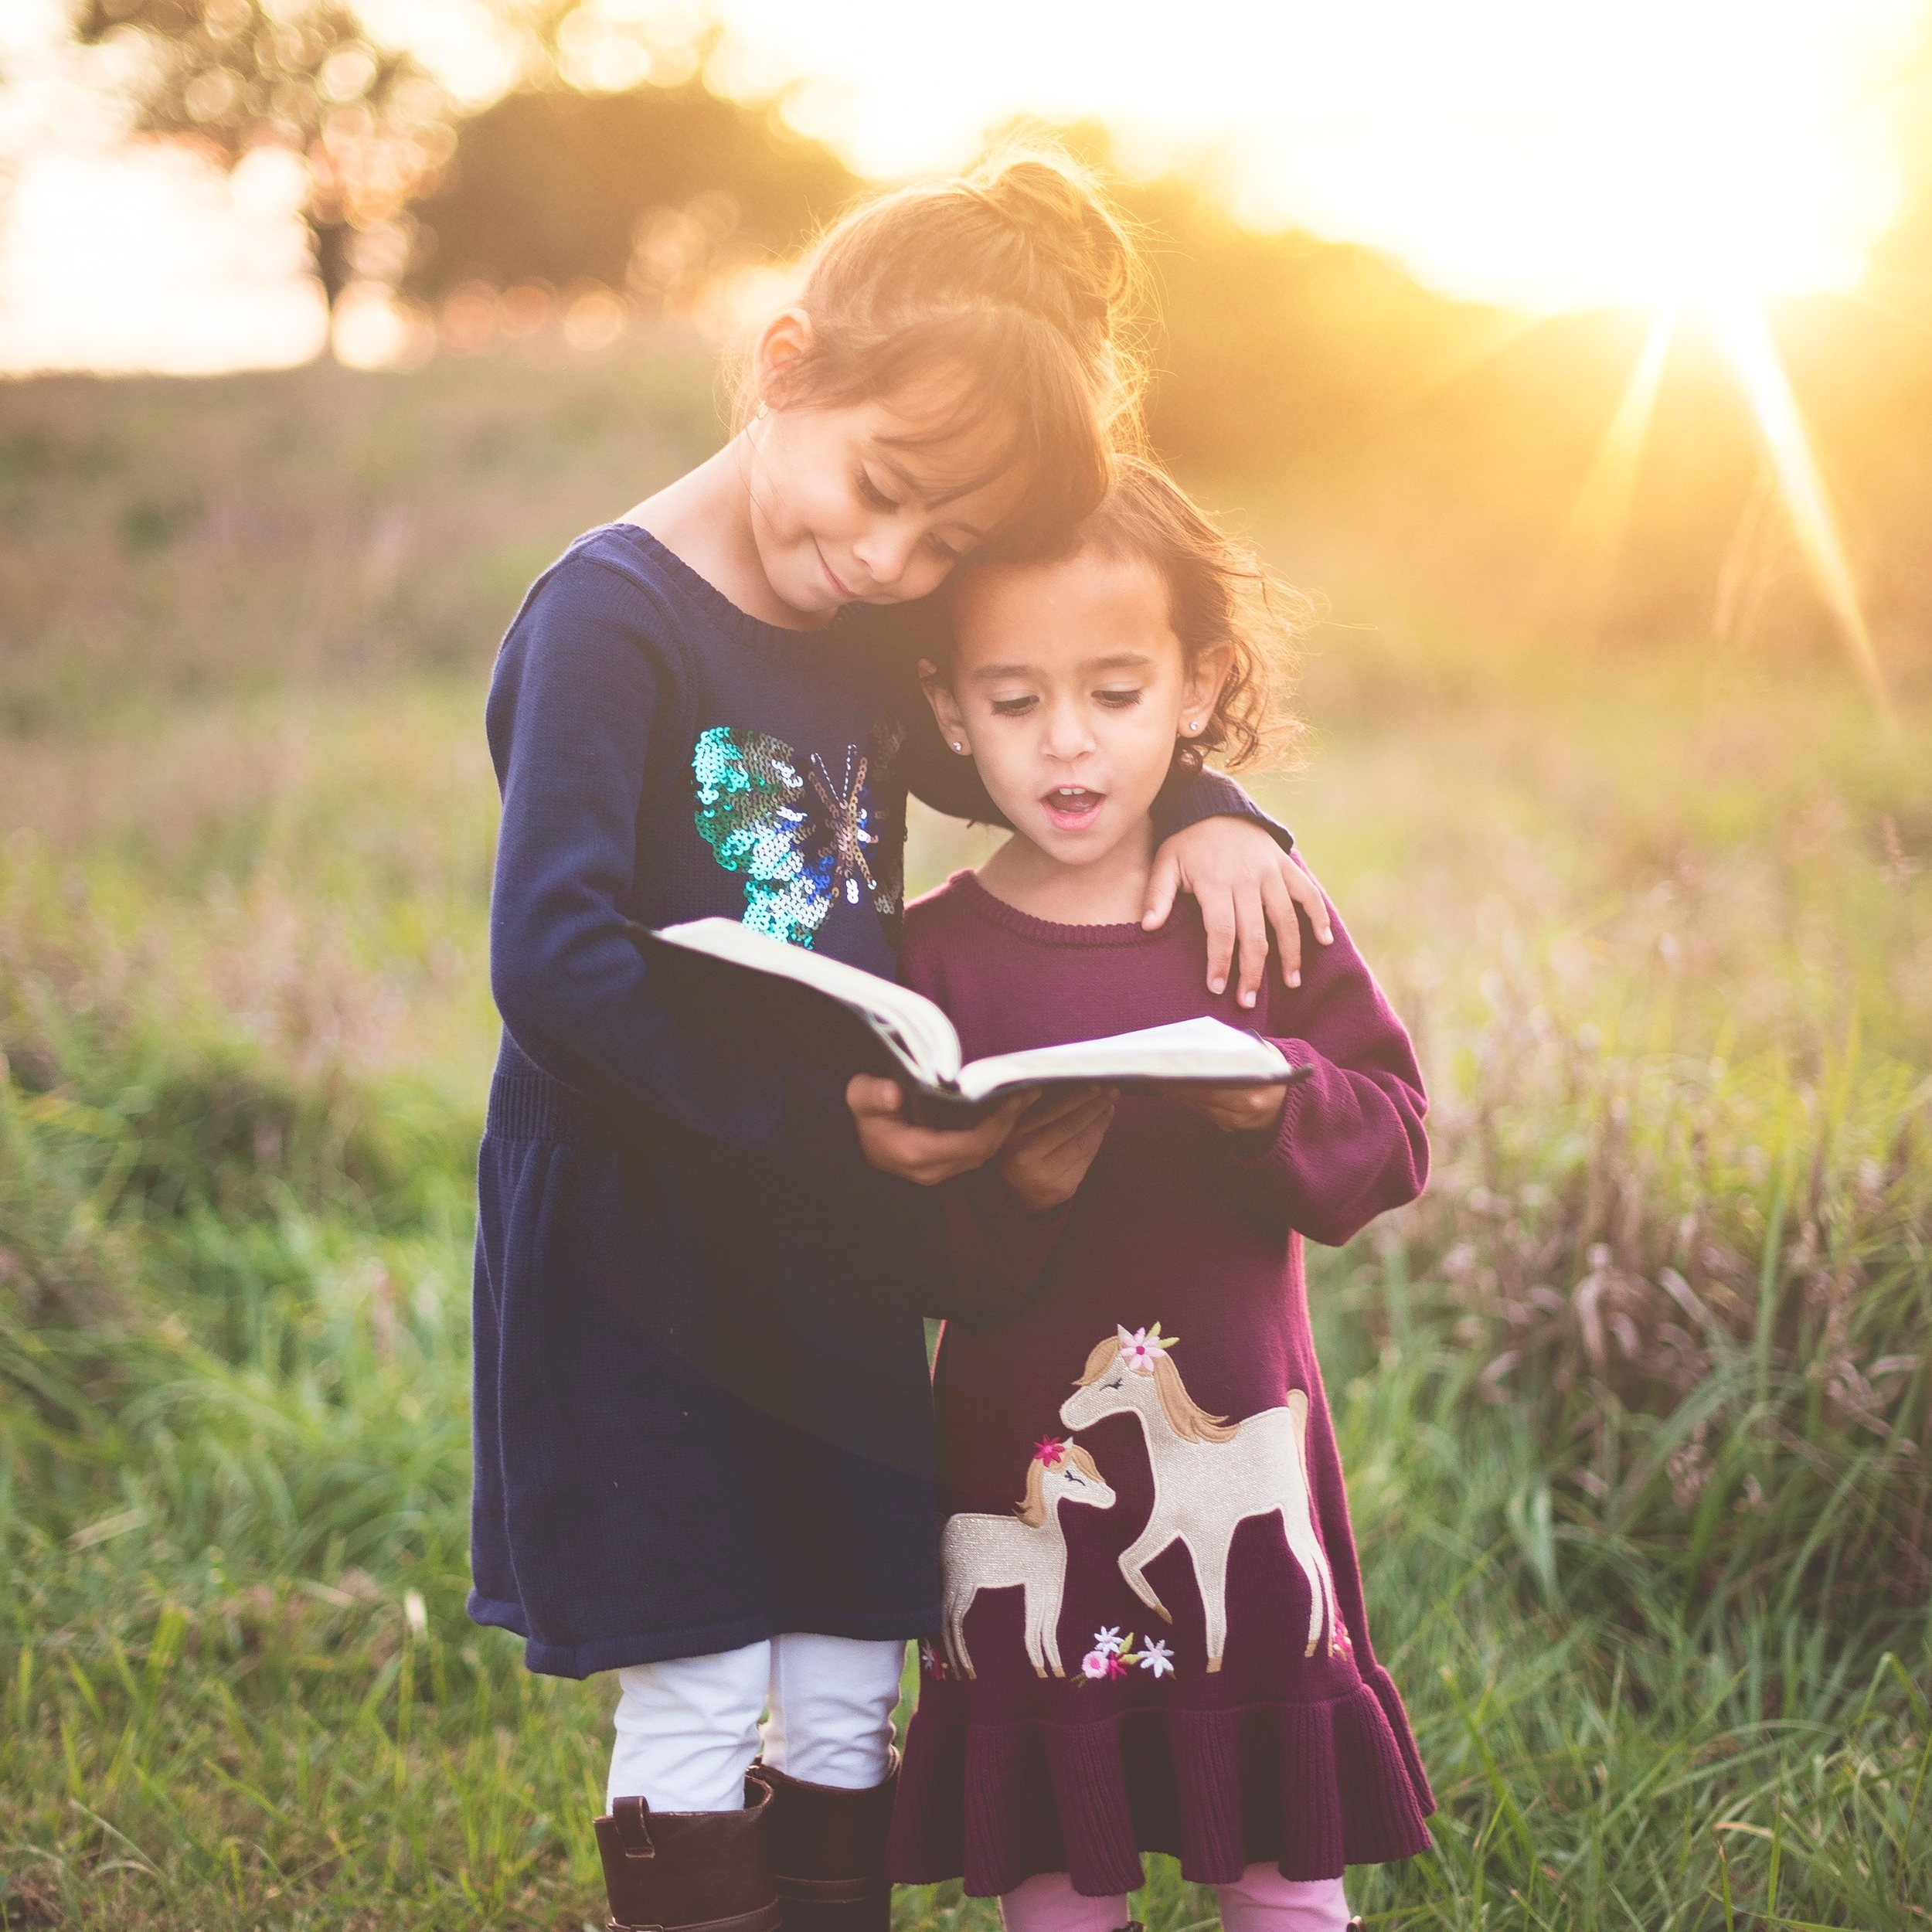 Sally Lloyd-JonesBooks - Spend time with your little one while enjoying great books you can trust.